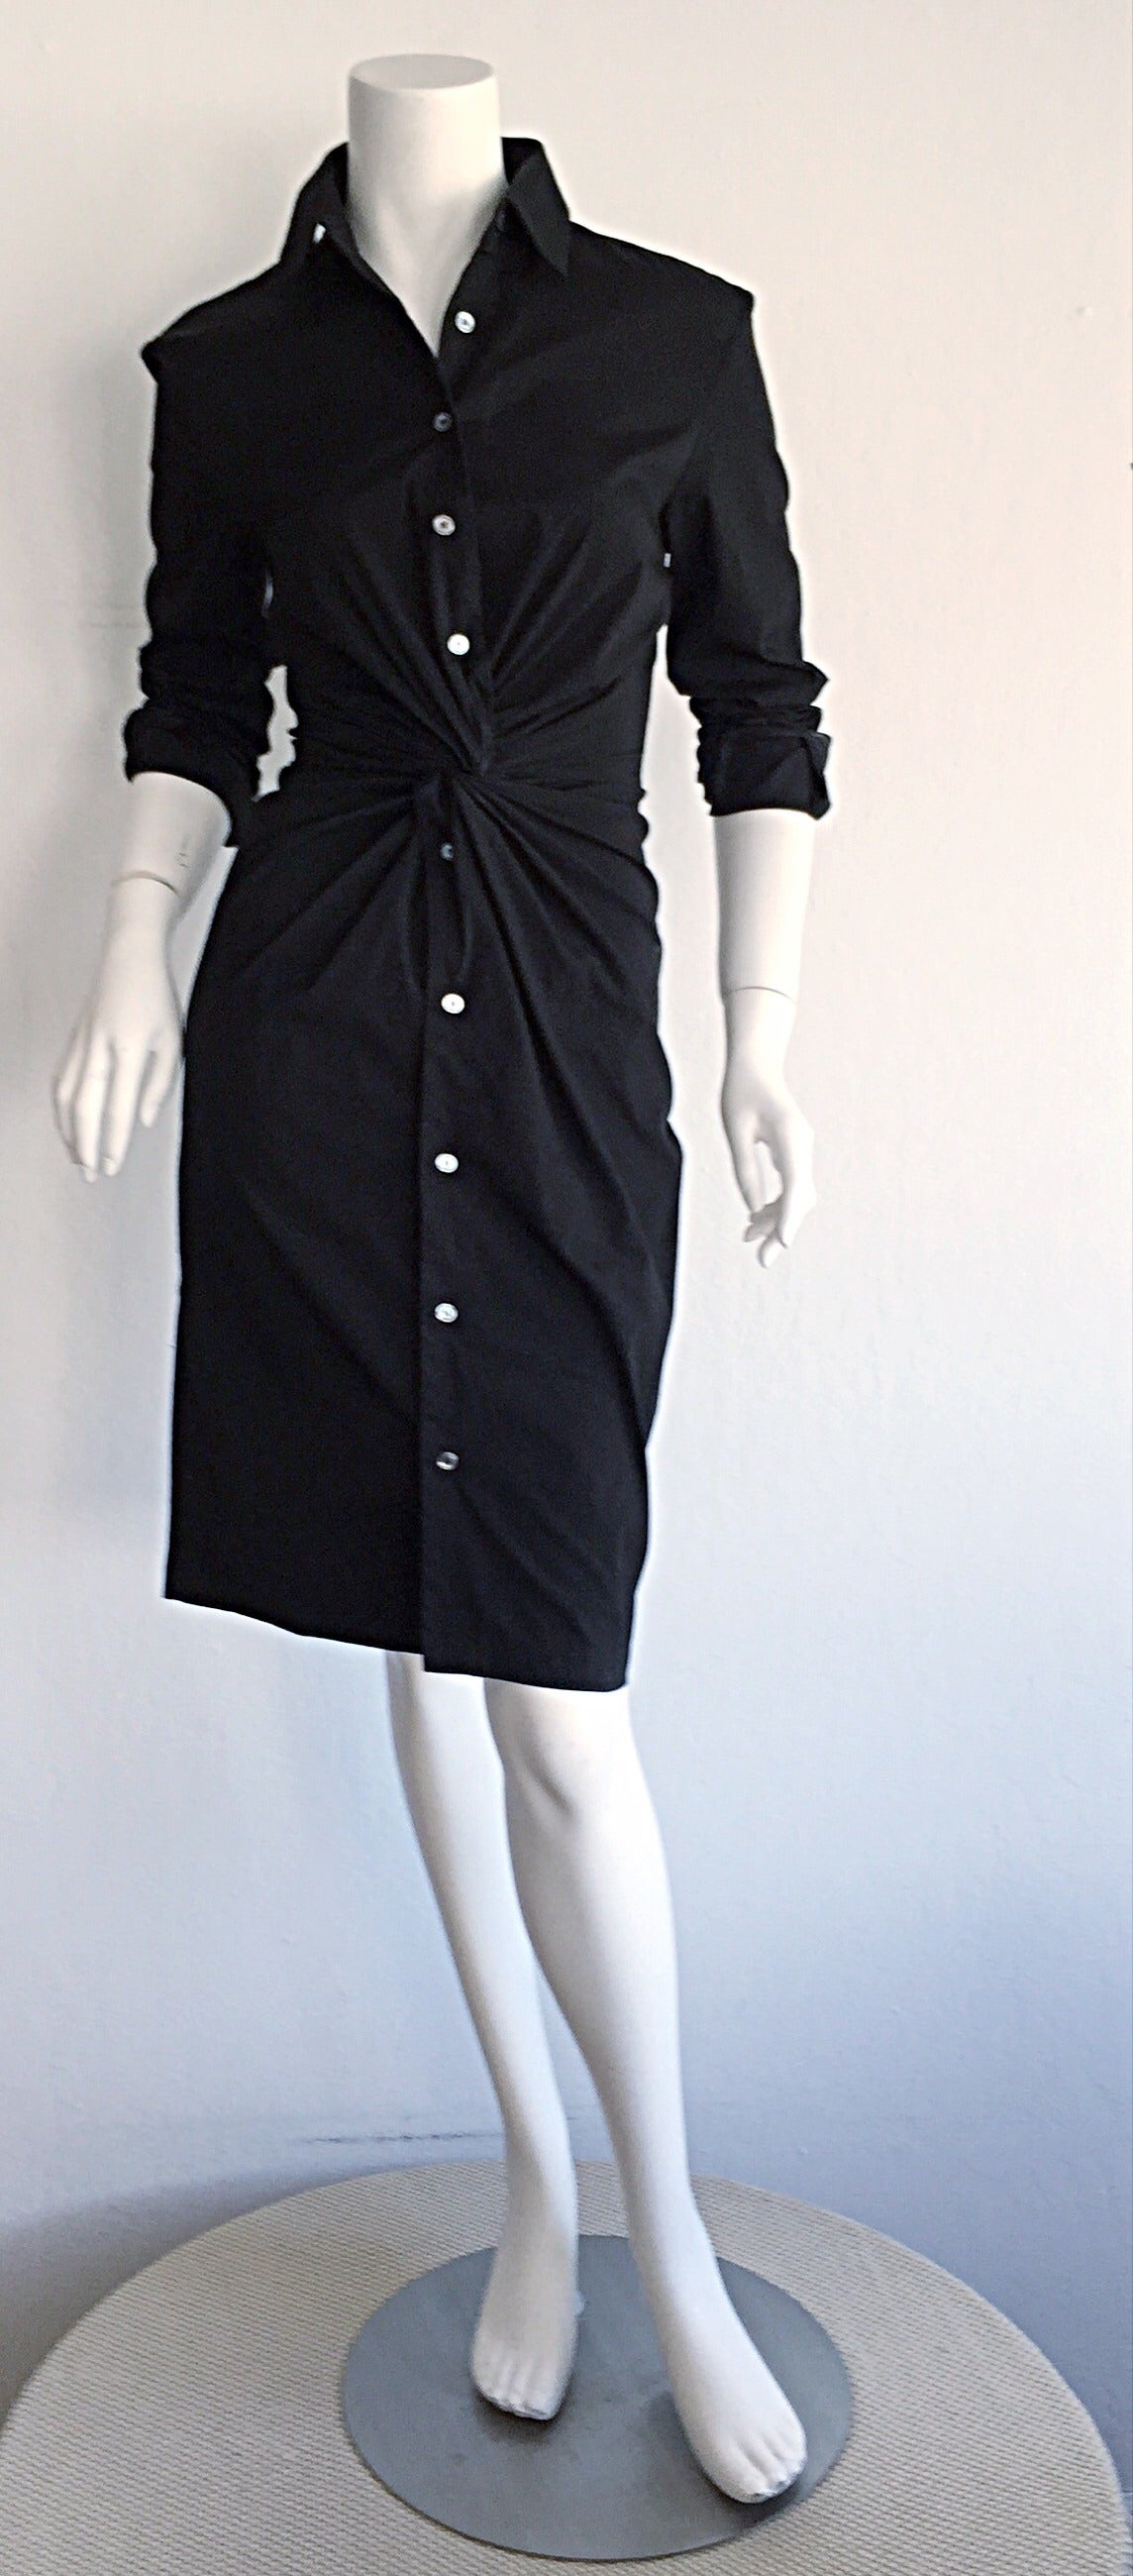 Ultimate Michael Kors Collection Black ' Twisted ' Shirt Dress LBD Size 2 3